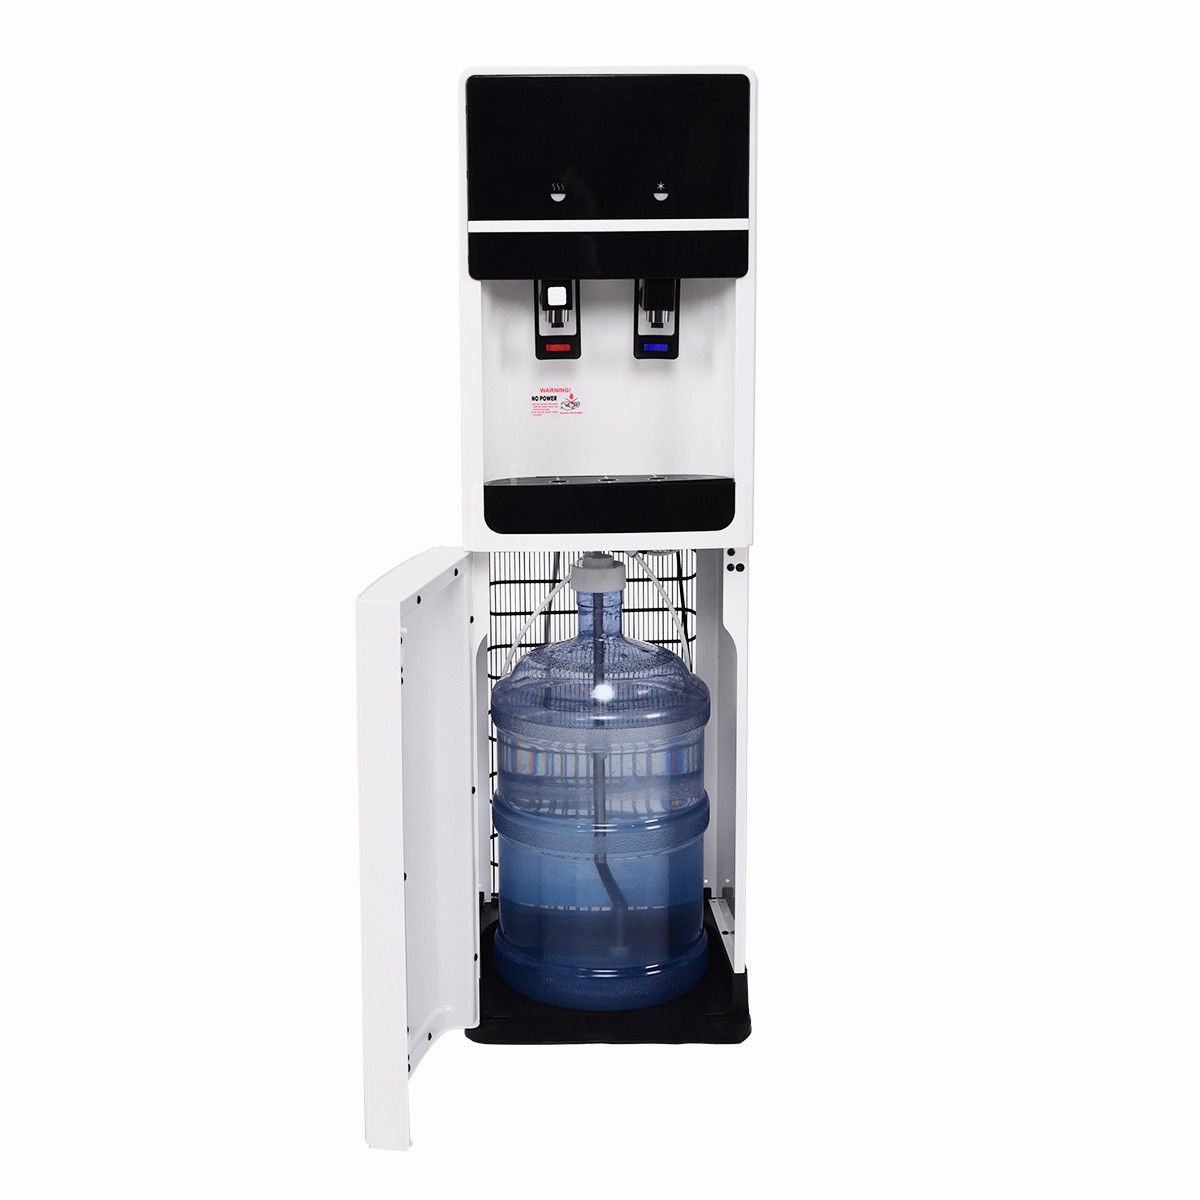 Costway Bottom Loading Water Cooler Dispenser Underlying Stainless Steel Water Cooler Dispenser Cold Hot 5 Gallon Home Office by COSTWAY (Image #1)